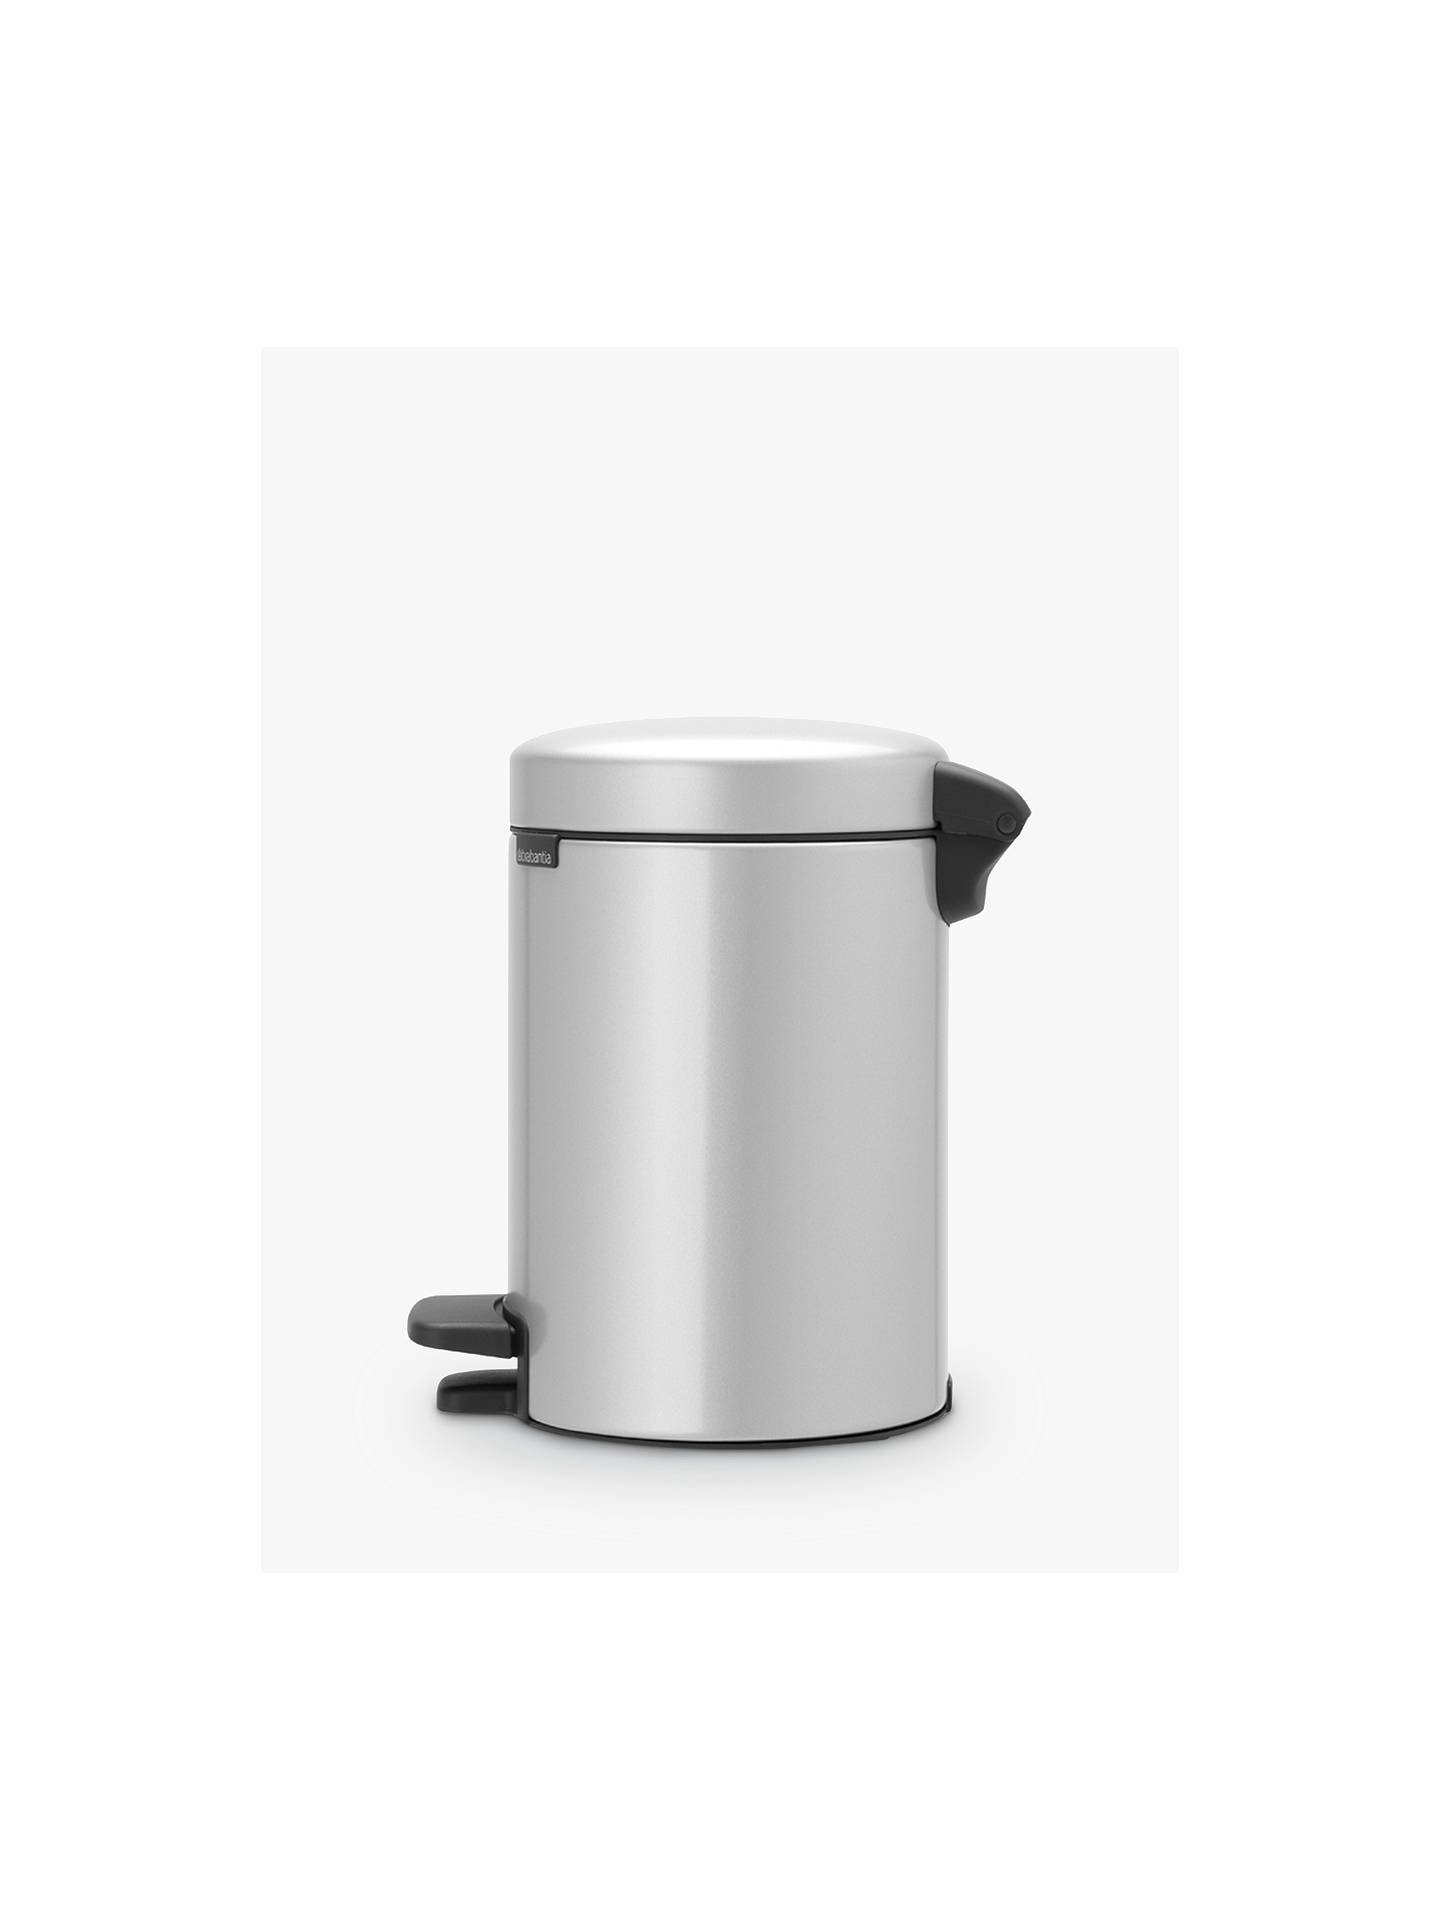 BuyBrabantia NewIcon Pedal Bin, Metallic Grey, 3L Online at johnlewis.com